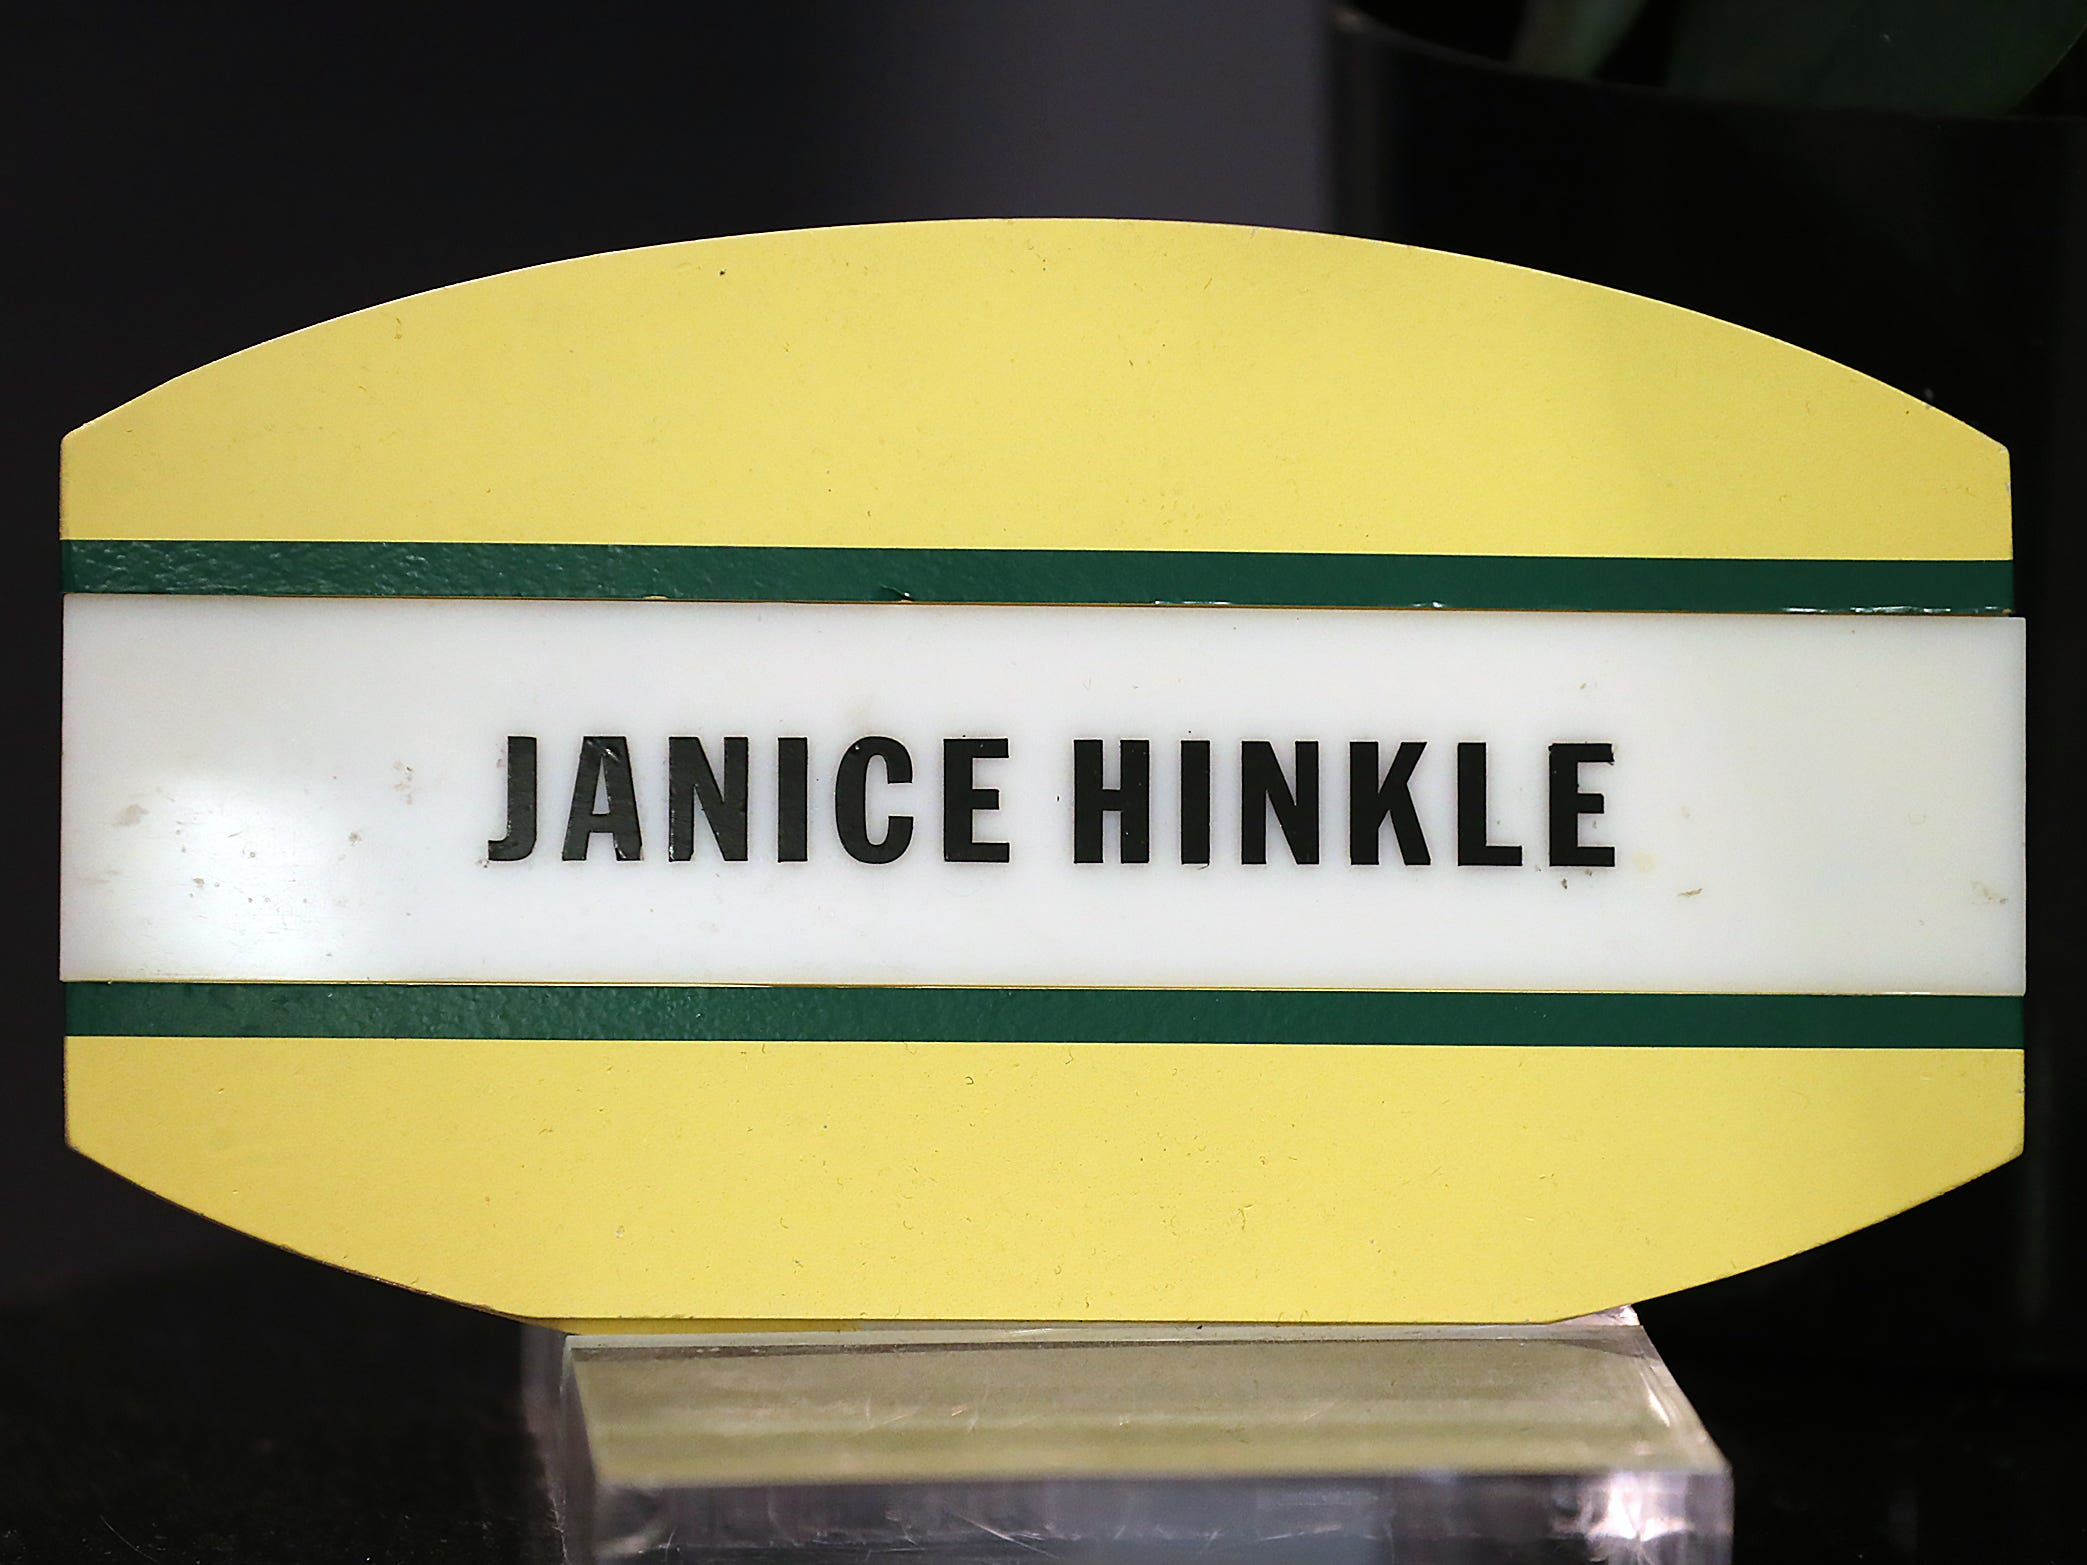 Janice Hinkle is receptionist for Pacers Sports & Entertainment, Friday, March 15, 2019.